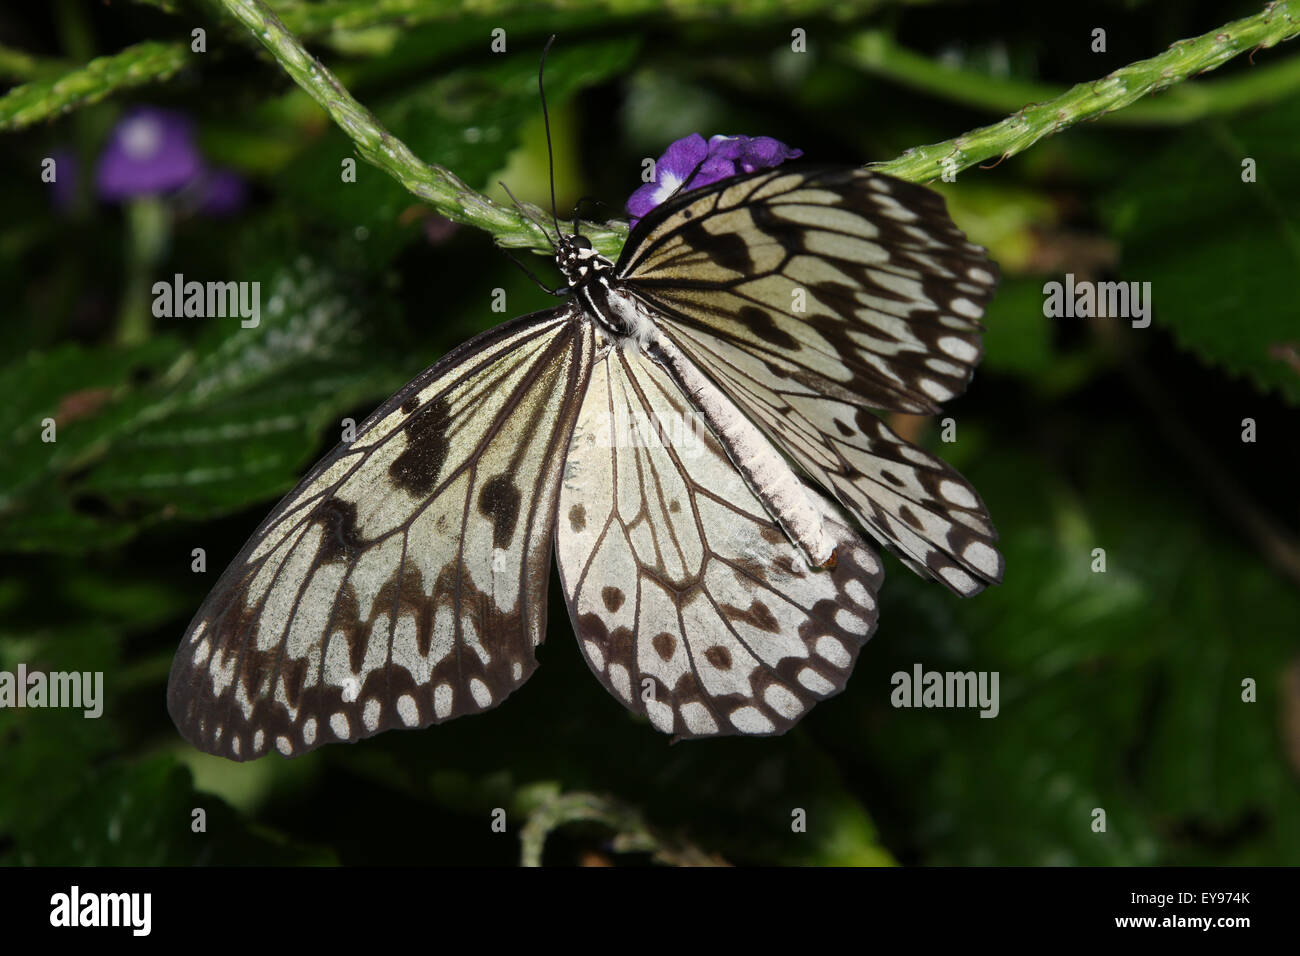 Butterfly. Rice Paper, Paper Kite, Idea leuconoe. The Butterfly Conservatory at Niagara Parks Botanical Gardens, - Stock Image